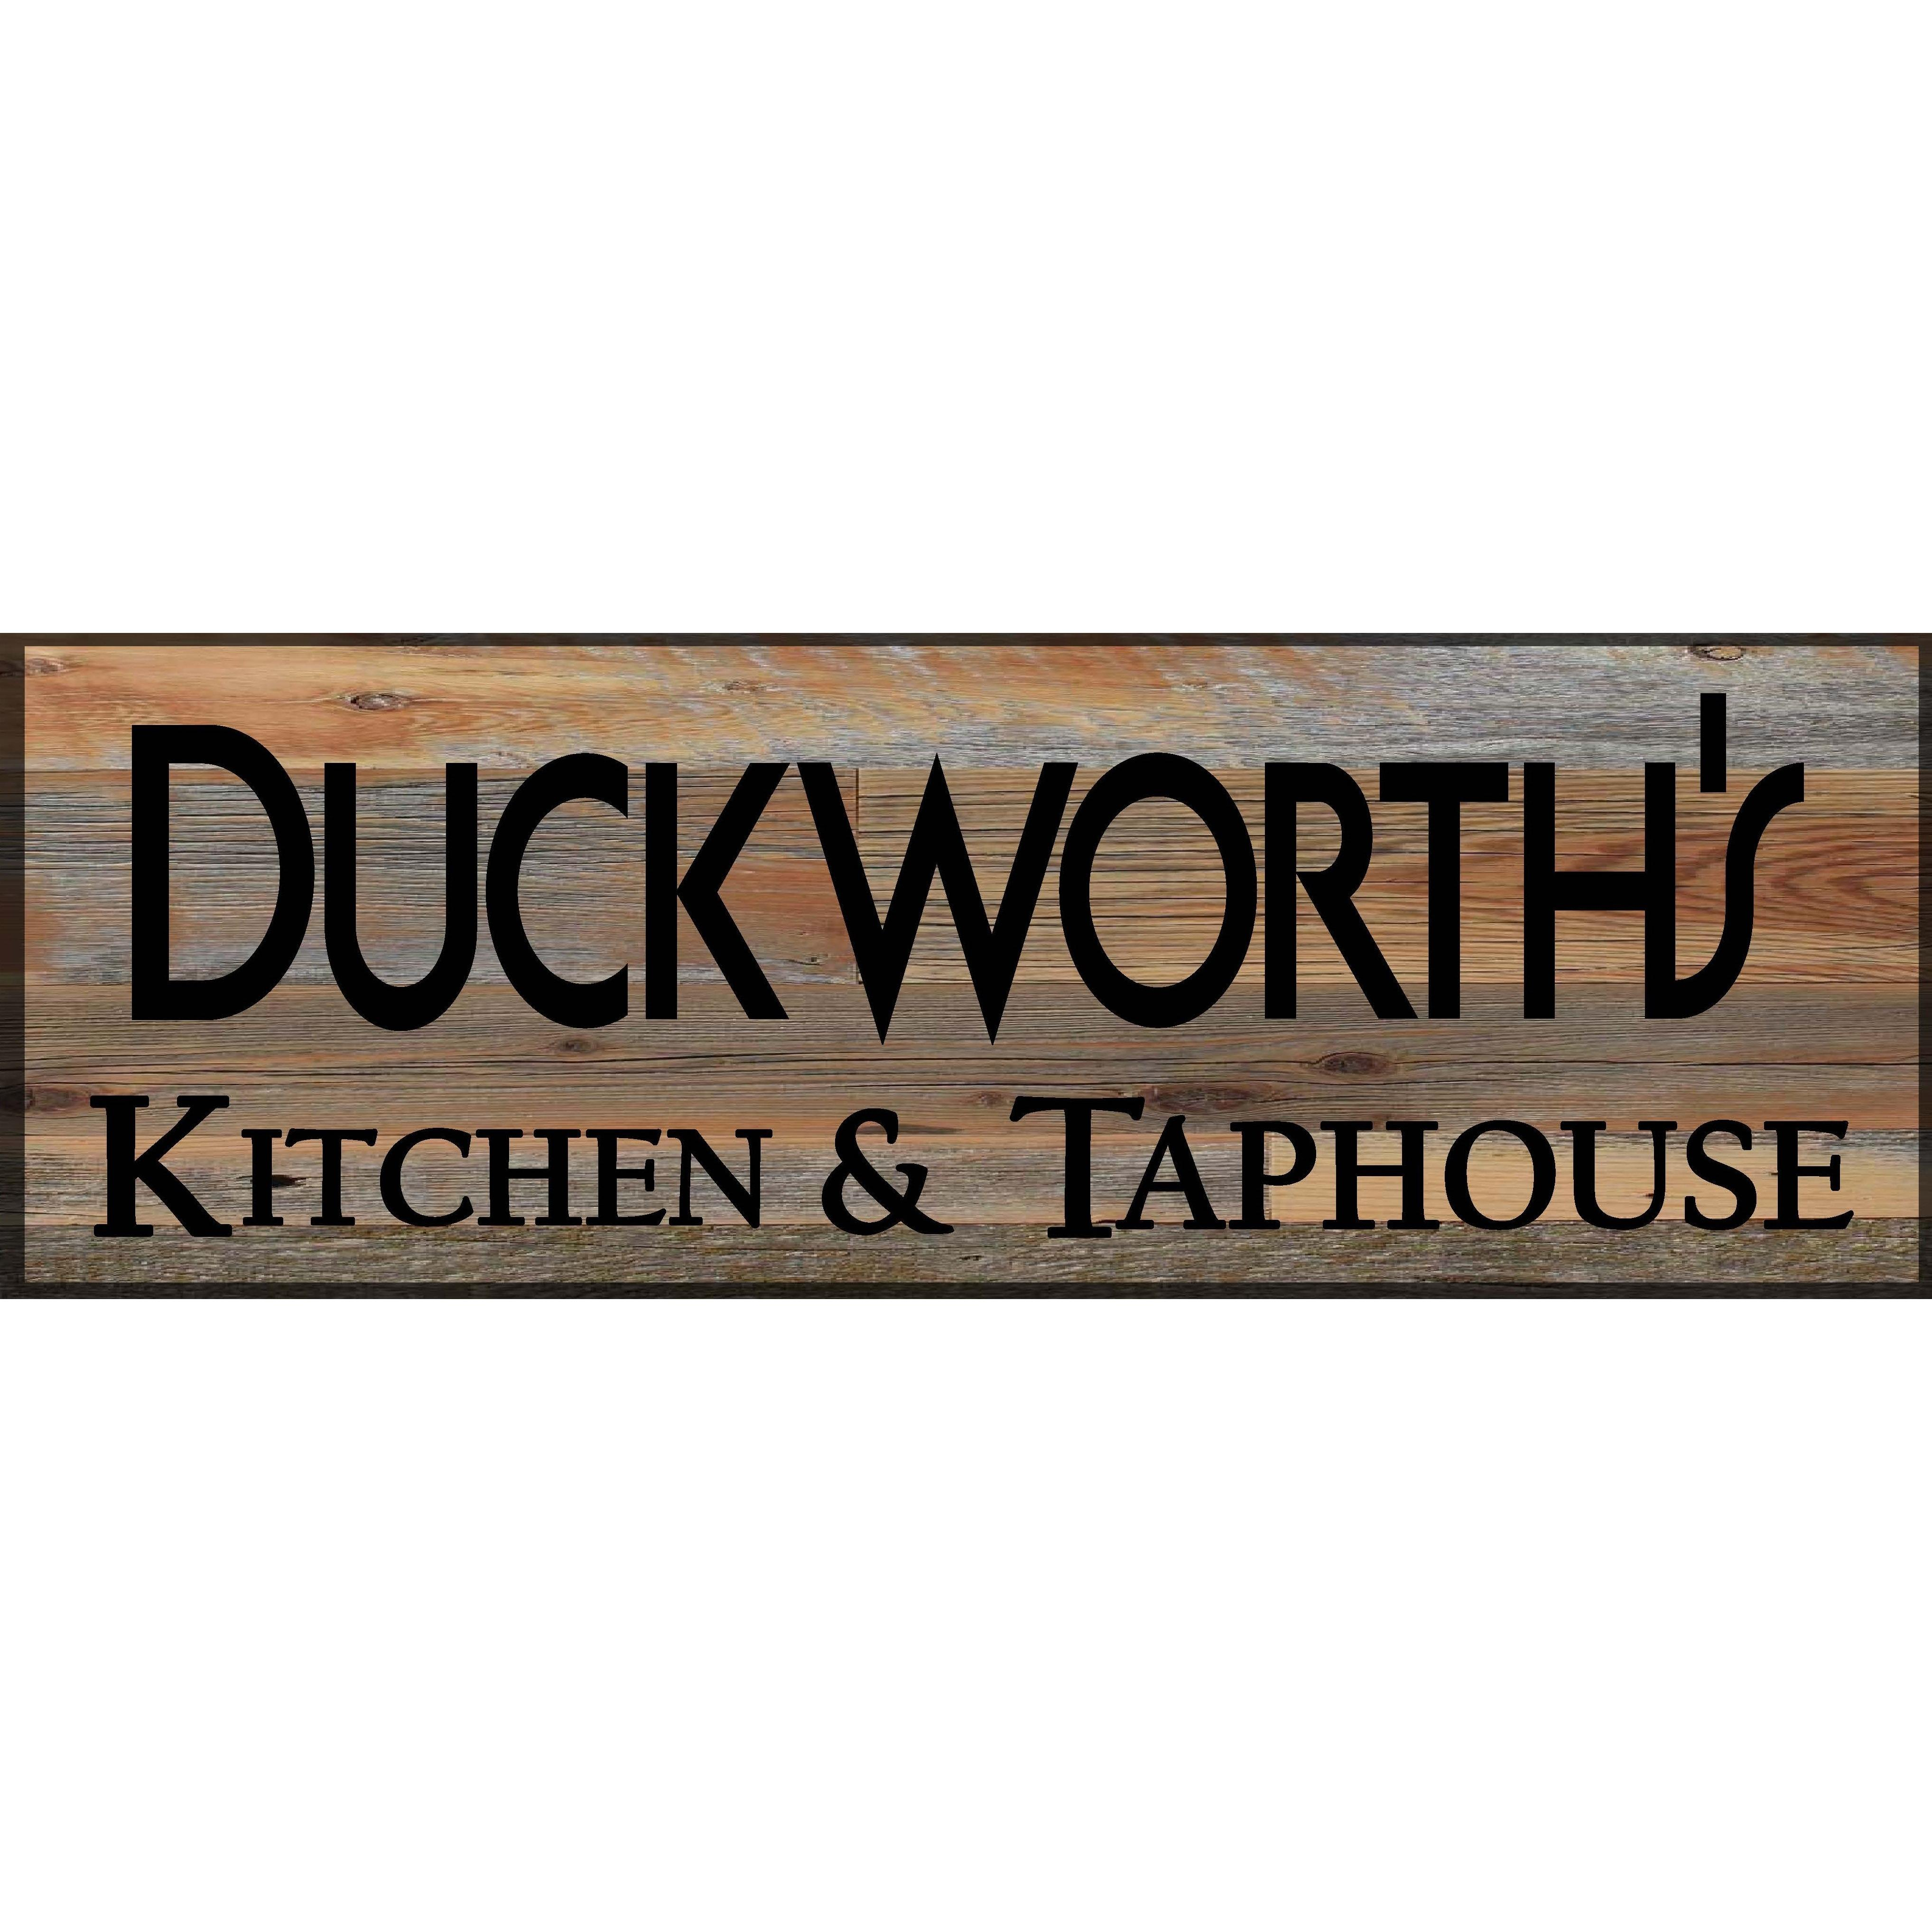 Duckworth's Kitchen & Taphouse